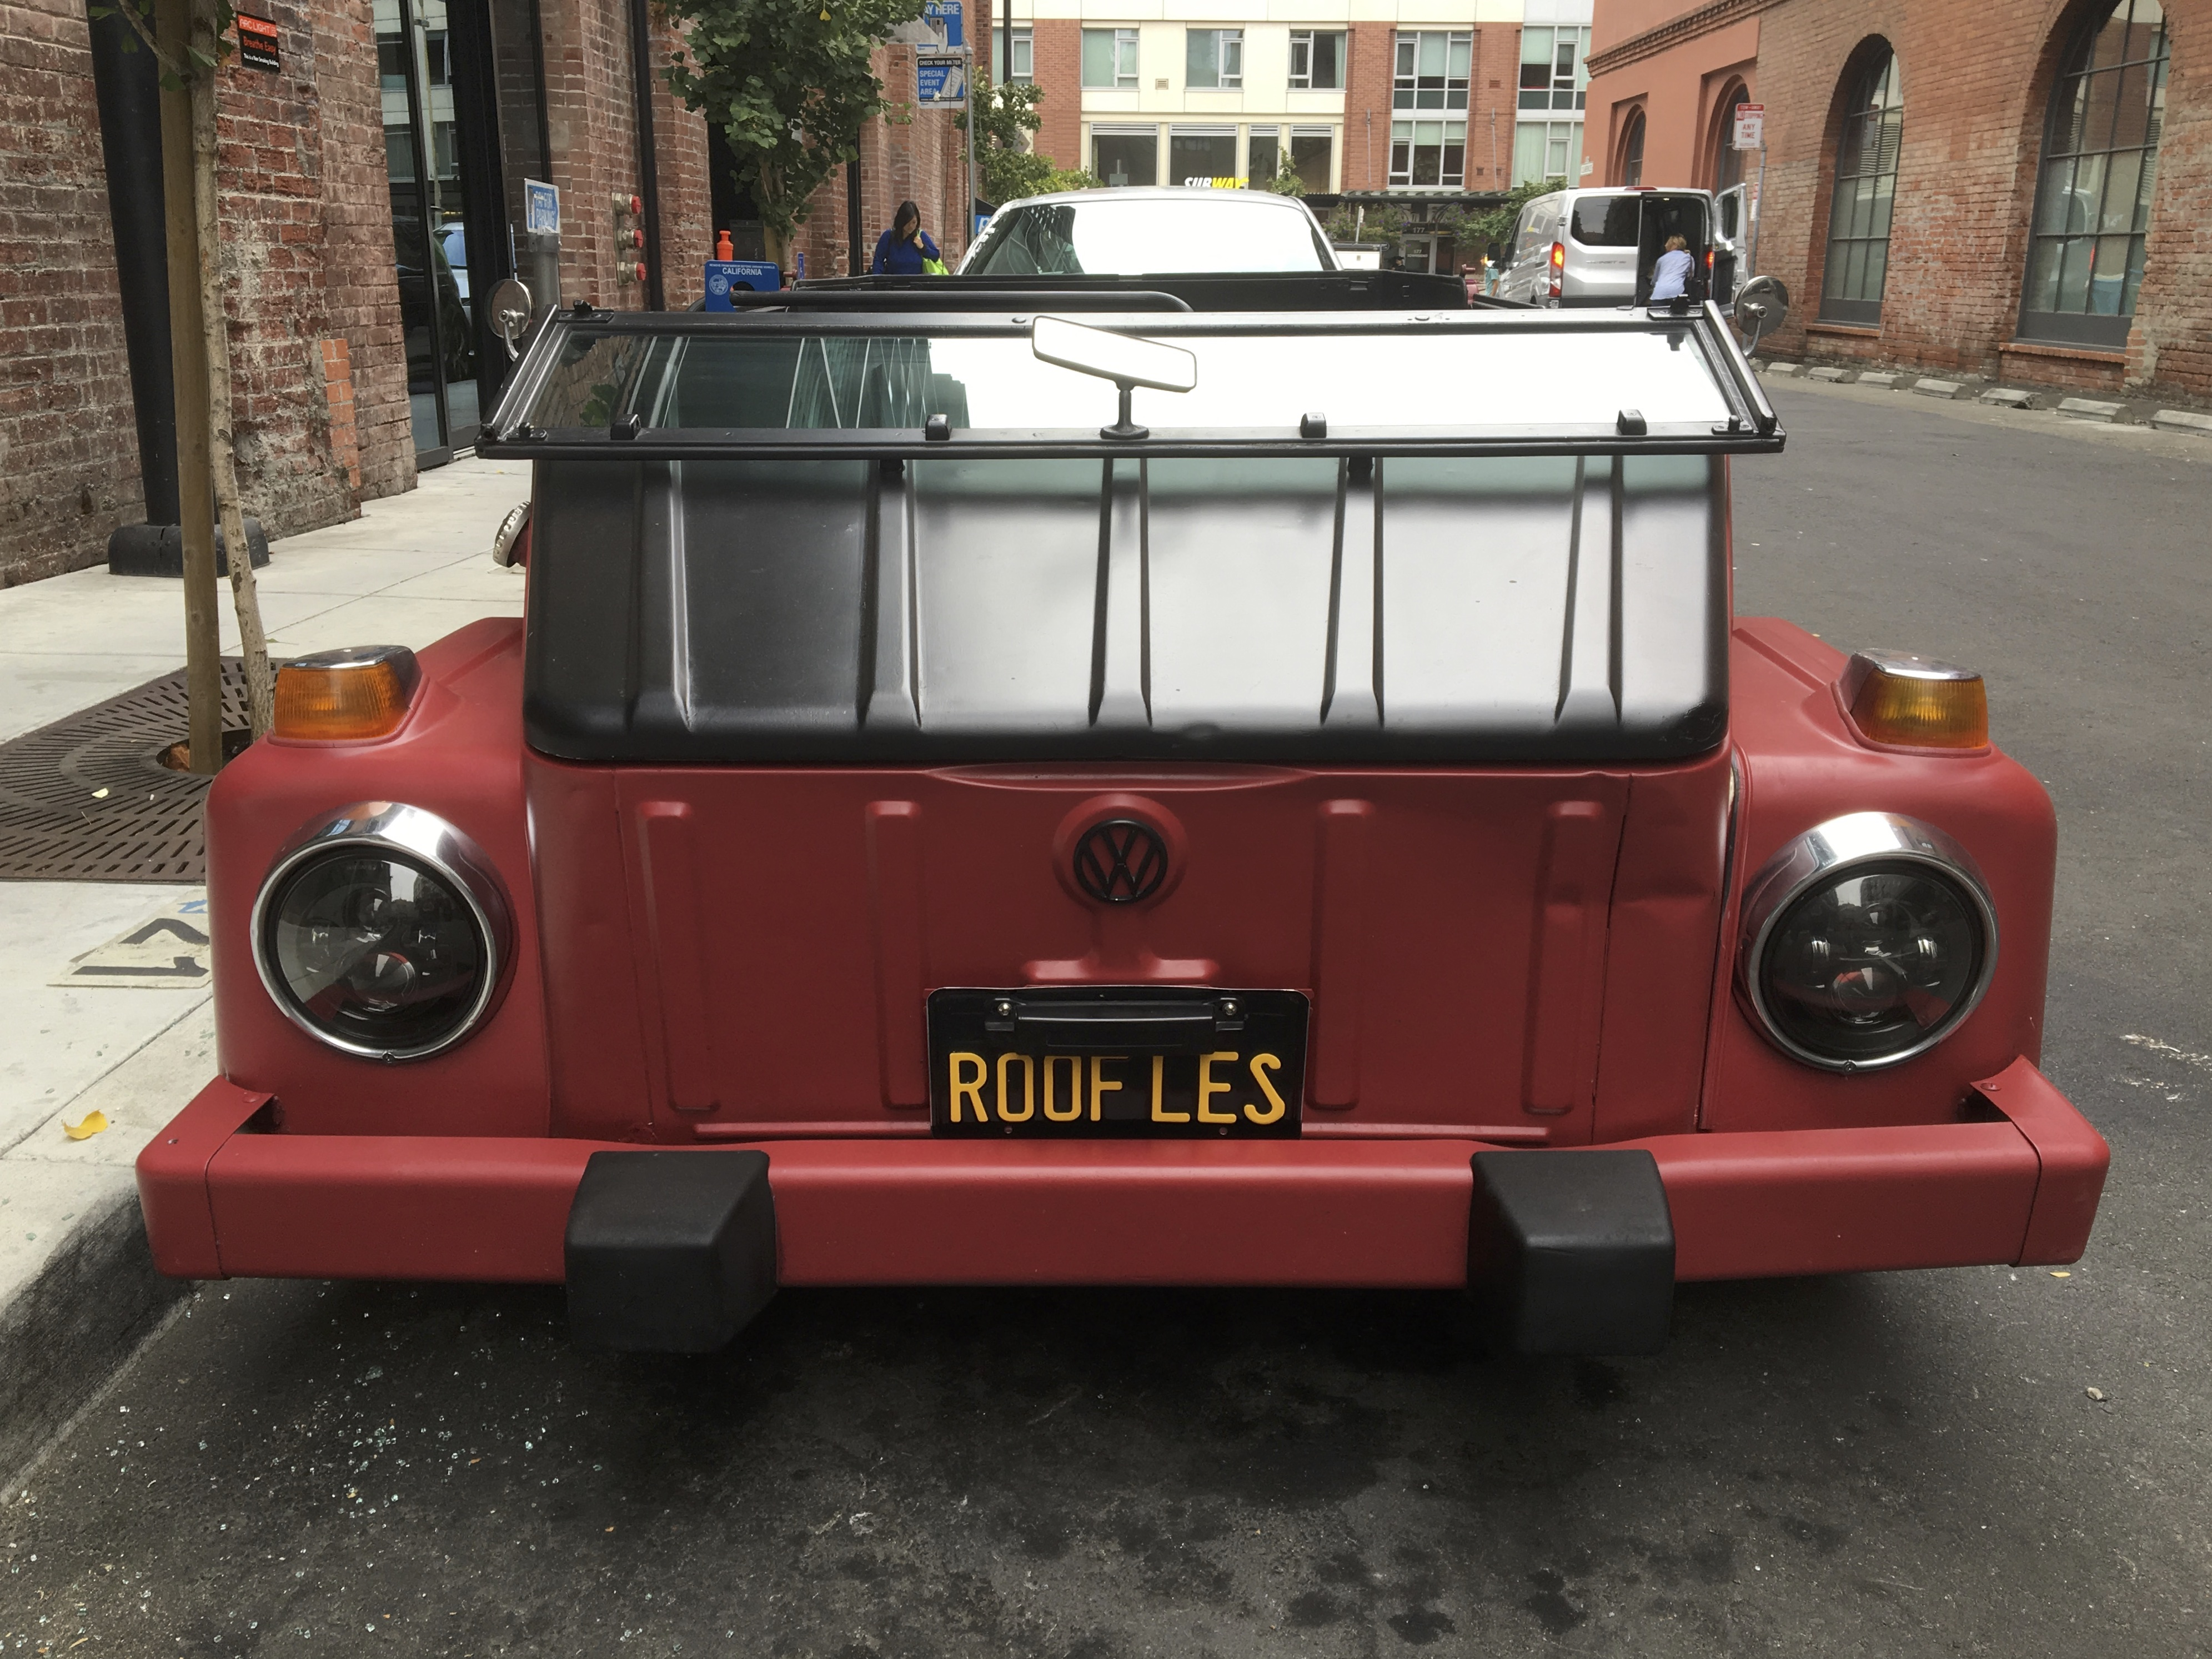 Red Volkswagen Thing With License Plate Roof Les